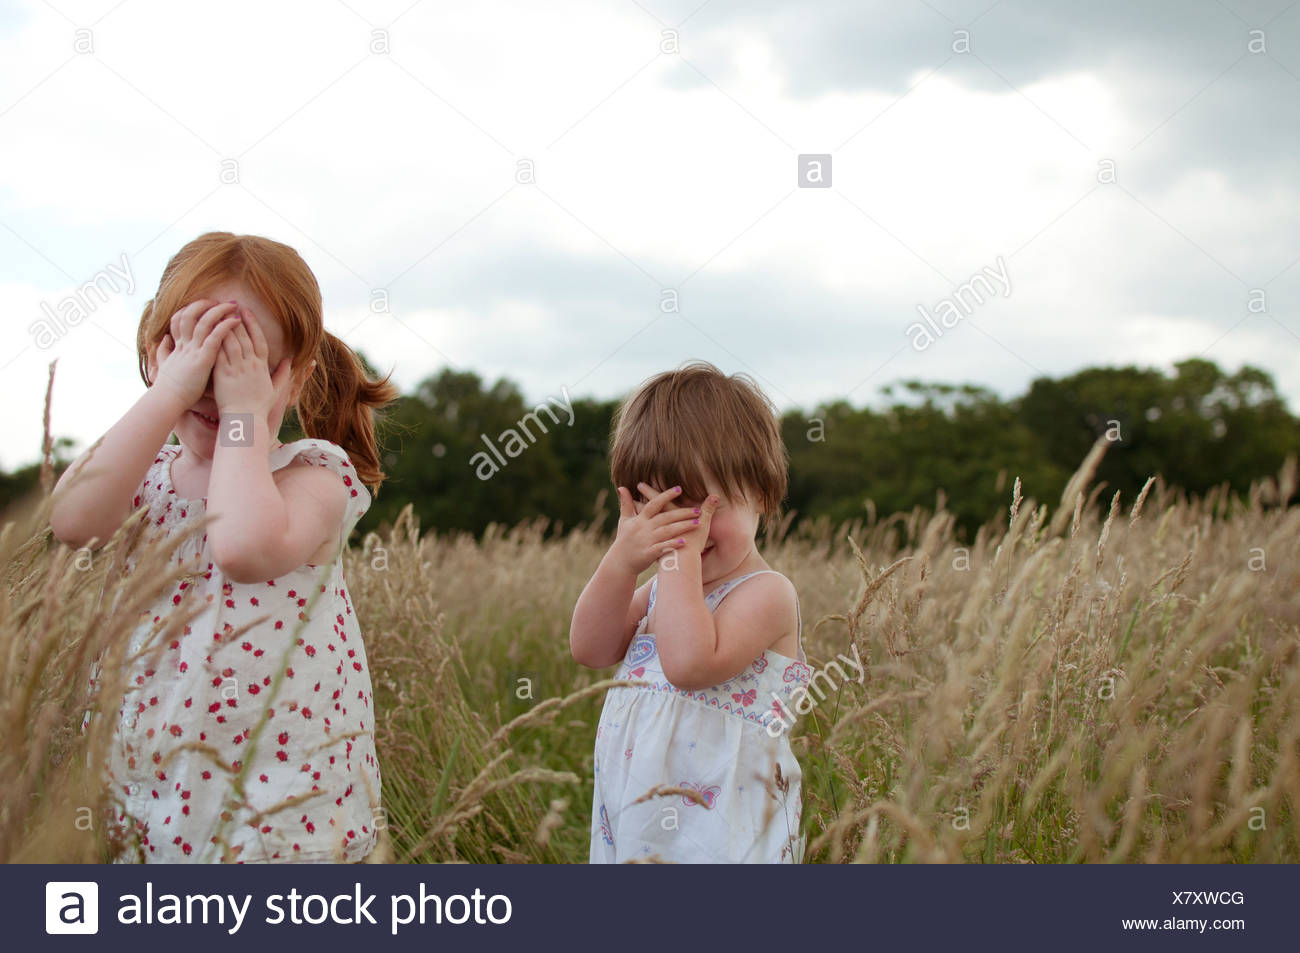 Two little girls playing hide and seek in a field - Stock Image